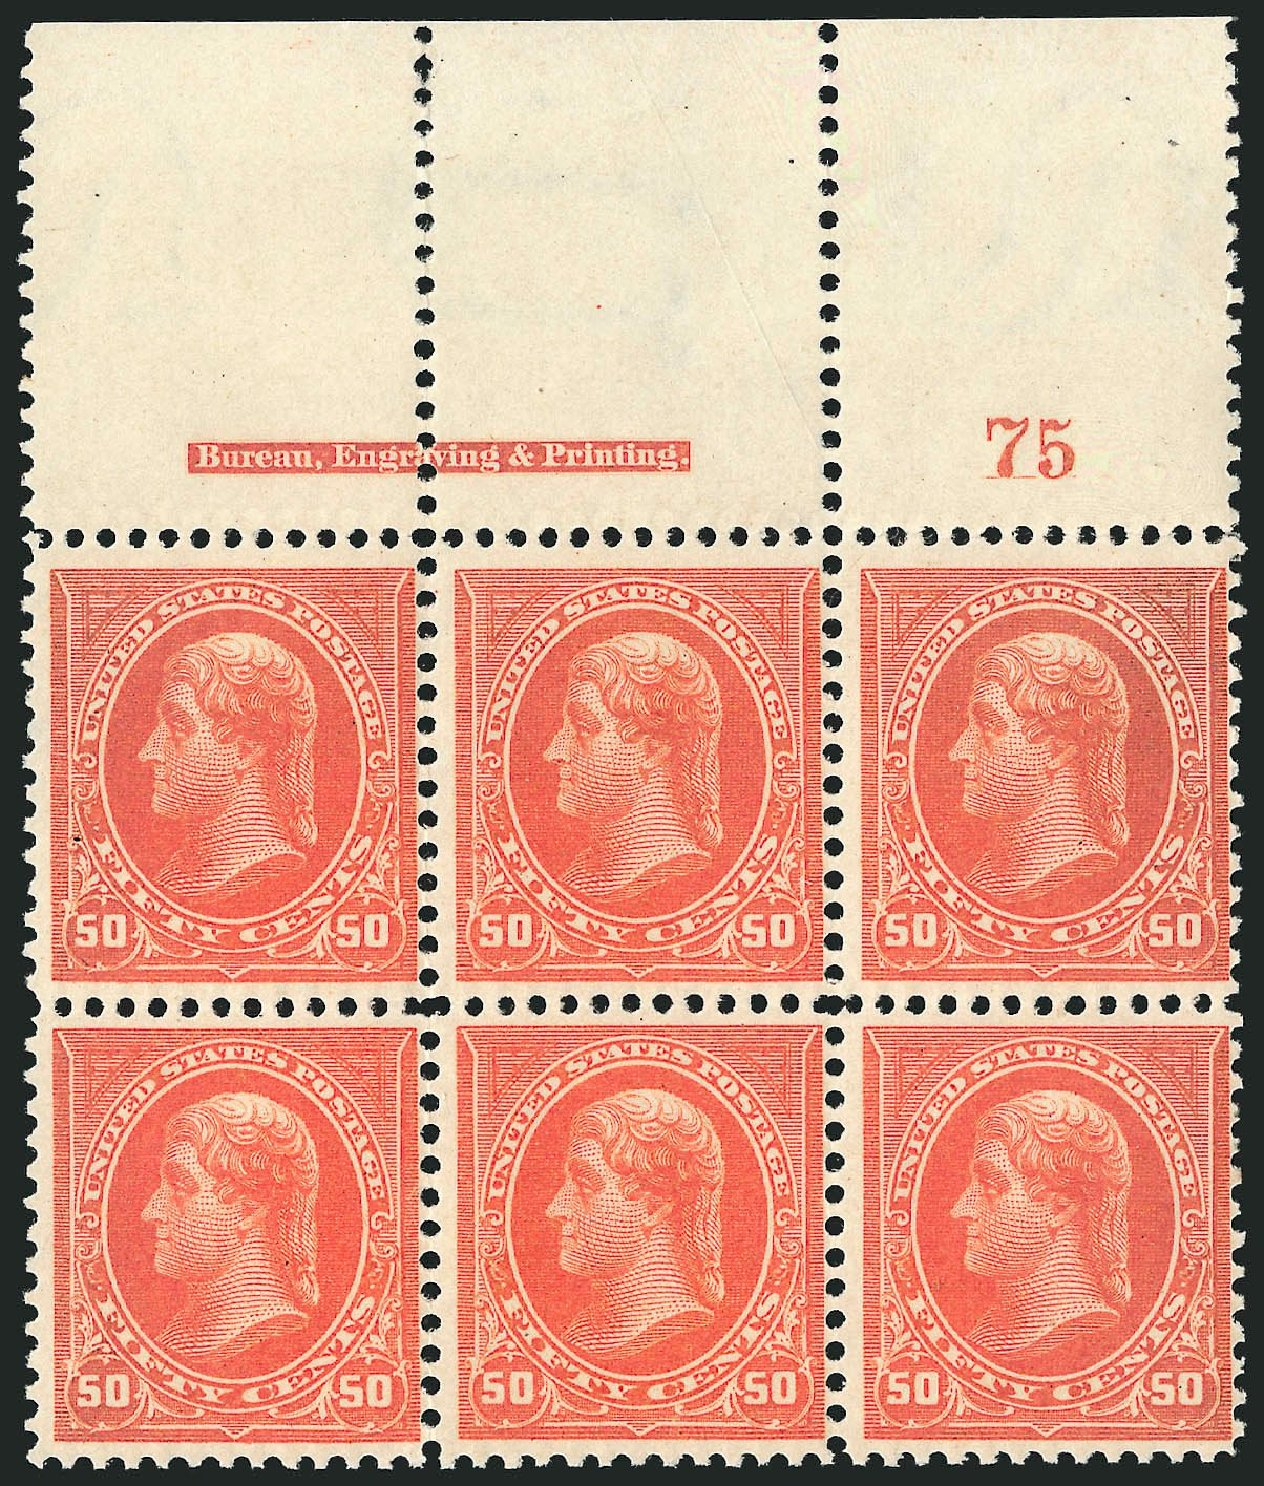 US Stamps Prices Scott Catalogue #275 - 1895 50c Jefferson. Robert Siegel Auction Galleries, Nov 2014, Sale 1084, Lot 3620